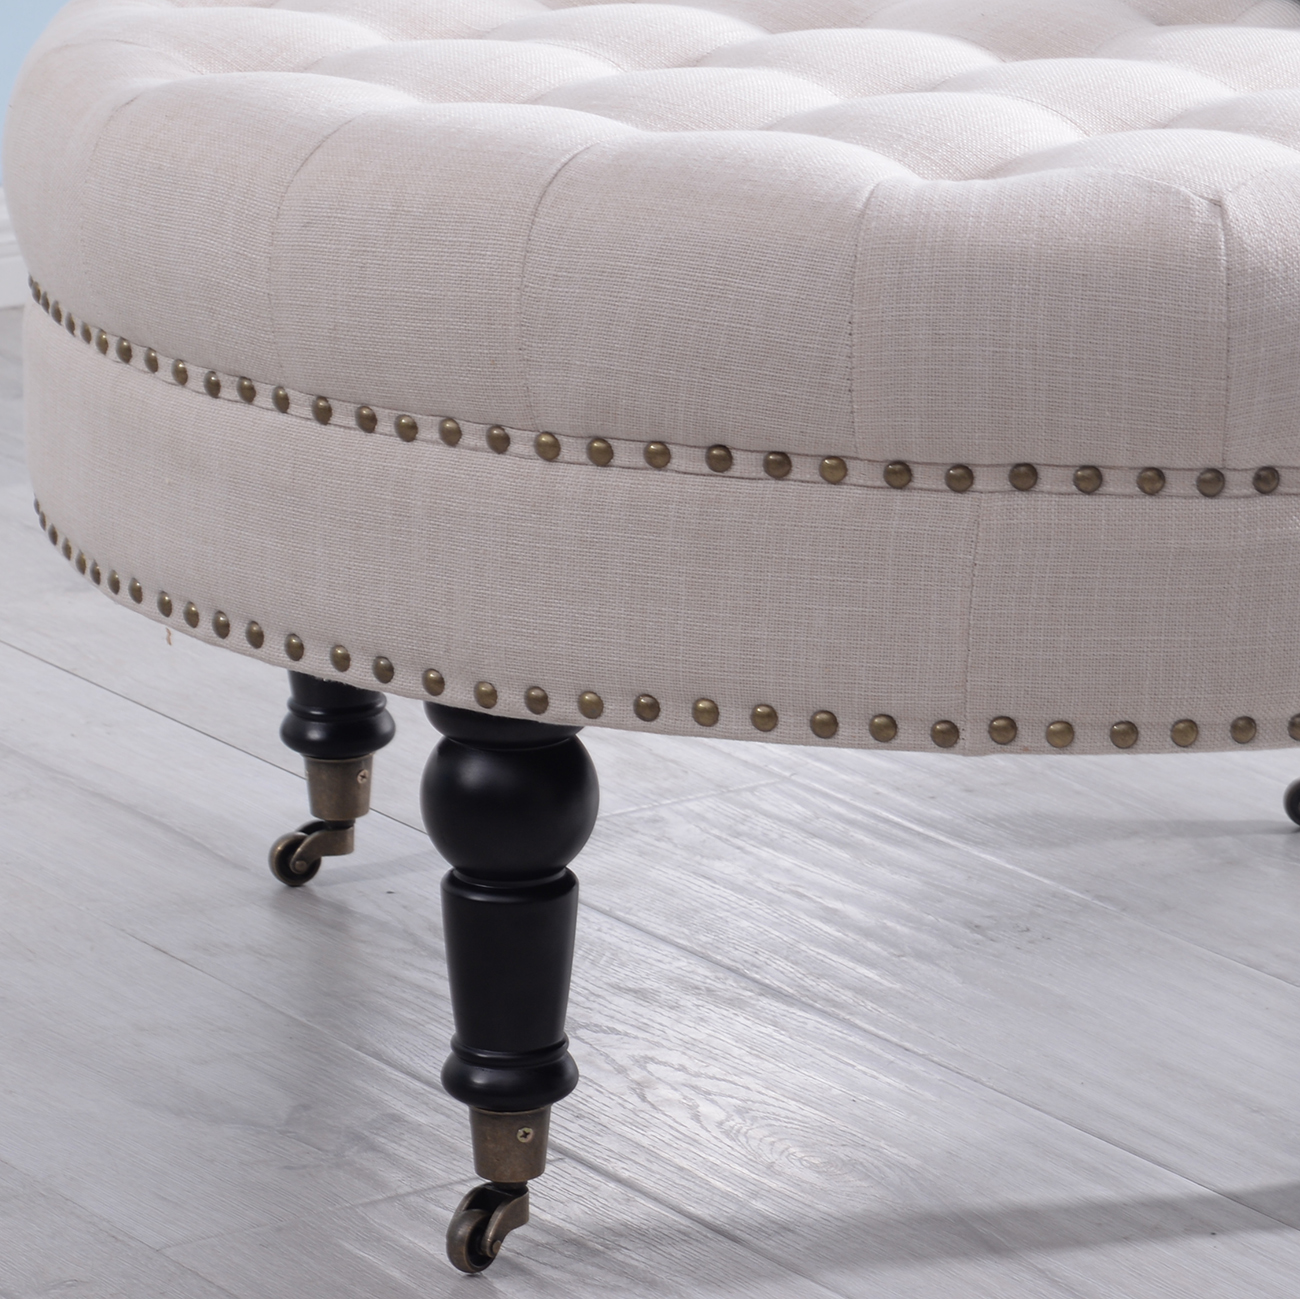 tufted ottoman round room indoor home decor seating coffee table tufted ottoman round room indoor home decor seating